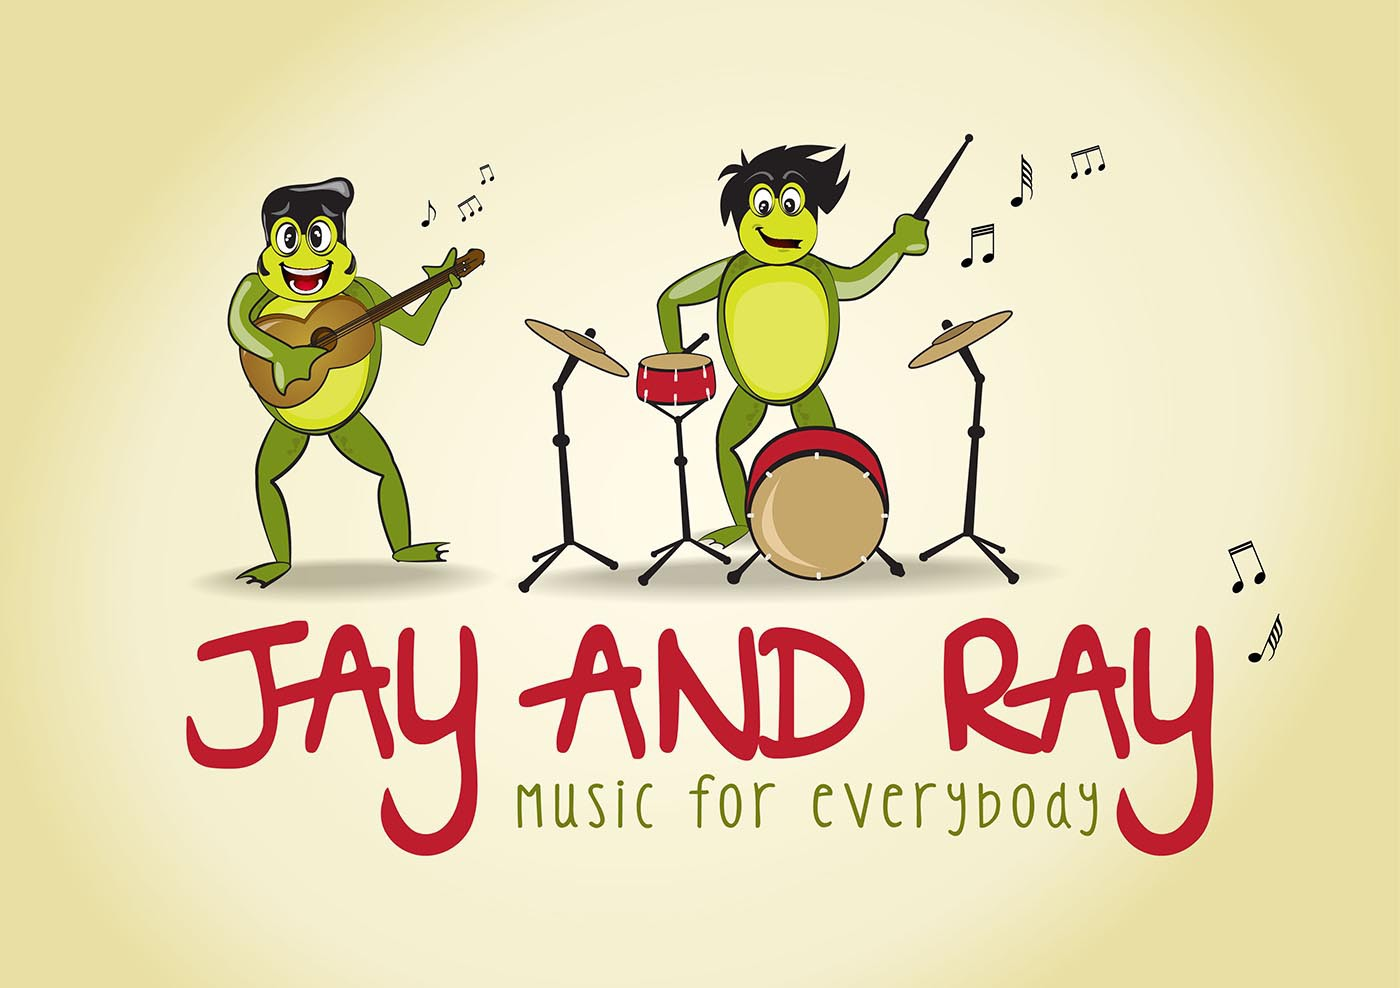 Help Jay and Ray with a new logo